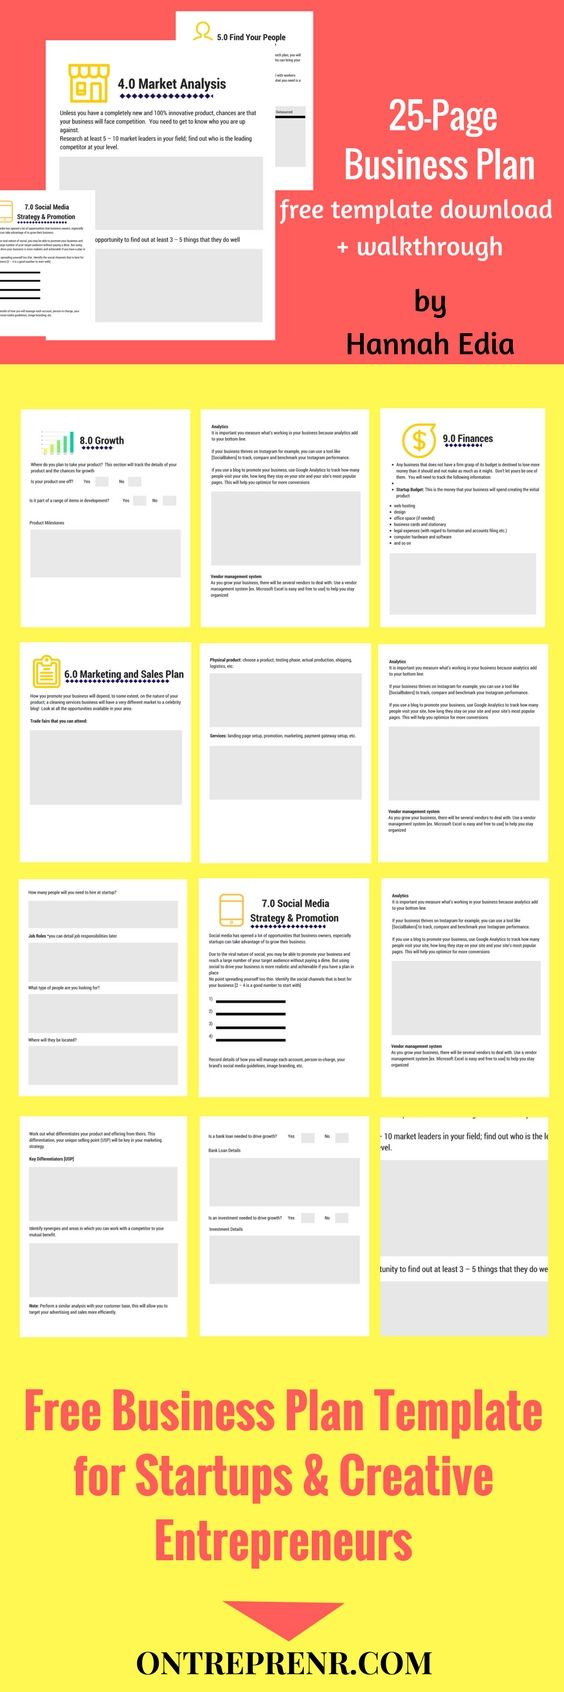 Cool 10 Tips For Writing A Good Resume Huge 100 Free Resume Builder Online Clean 16 Birthday Invitation Templates 1st Birthday Invitation Template Young 1st Birthday Invite Templates Orange2.5 Button Template 25  Best Ideas About Business Plan Template Free On Pinterest ..